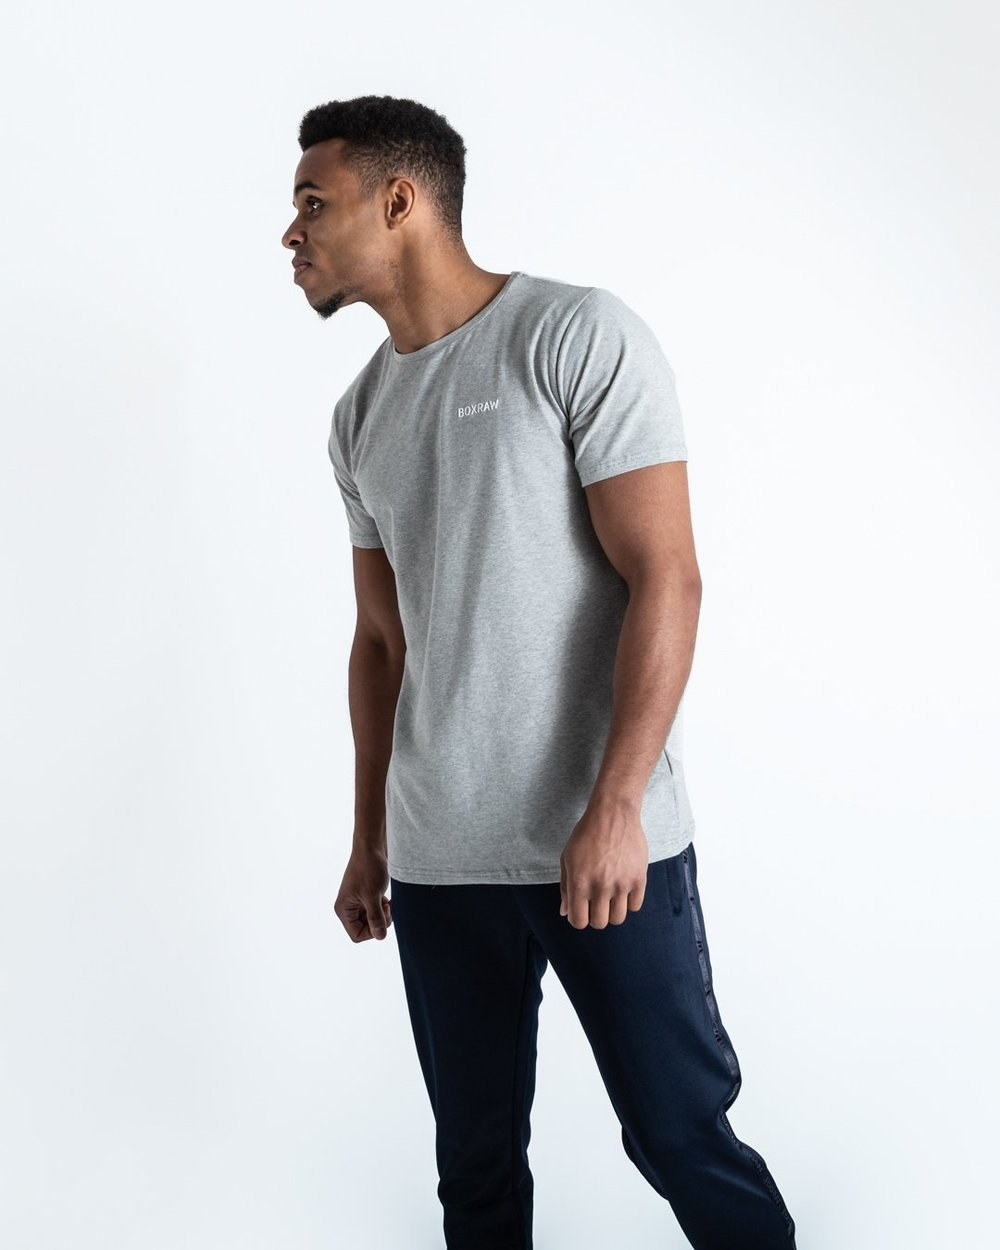 BOXRAW LOGO T-SHIRT - GREY - Pandemic Fight Gear Inc.